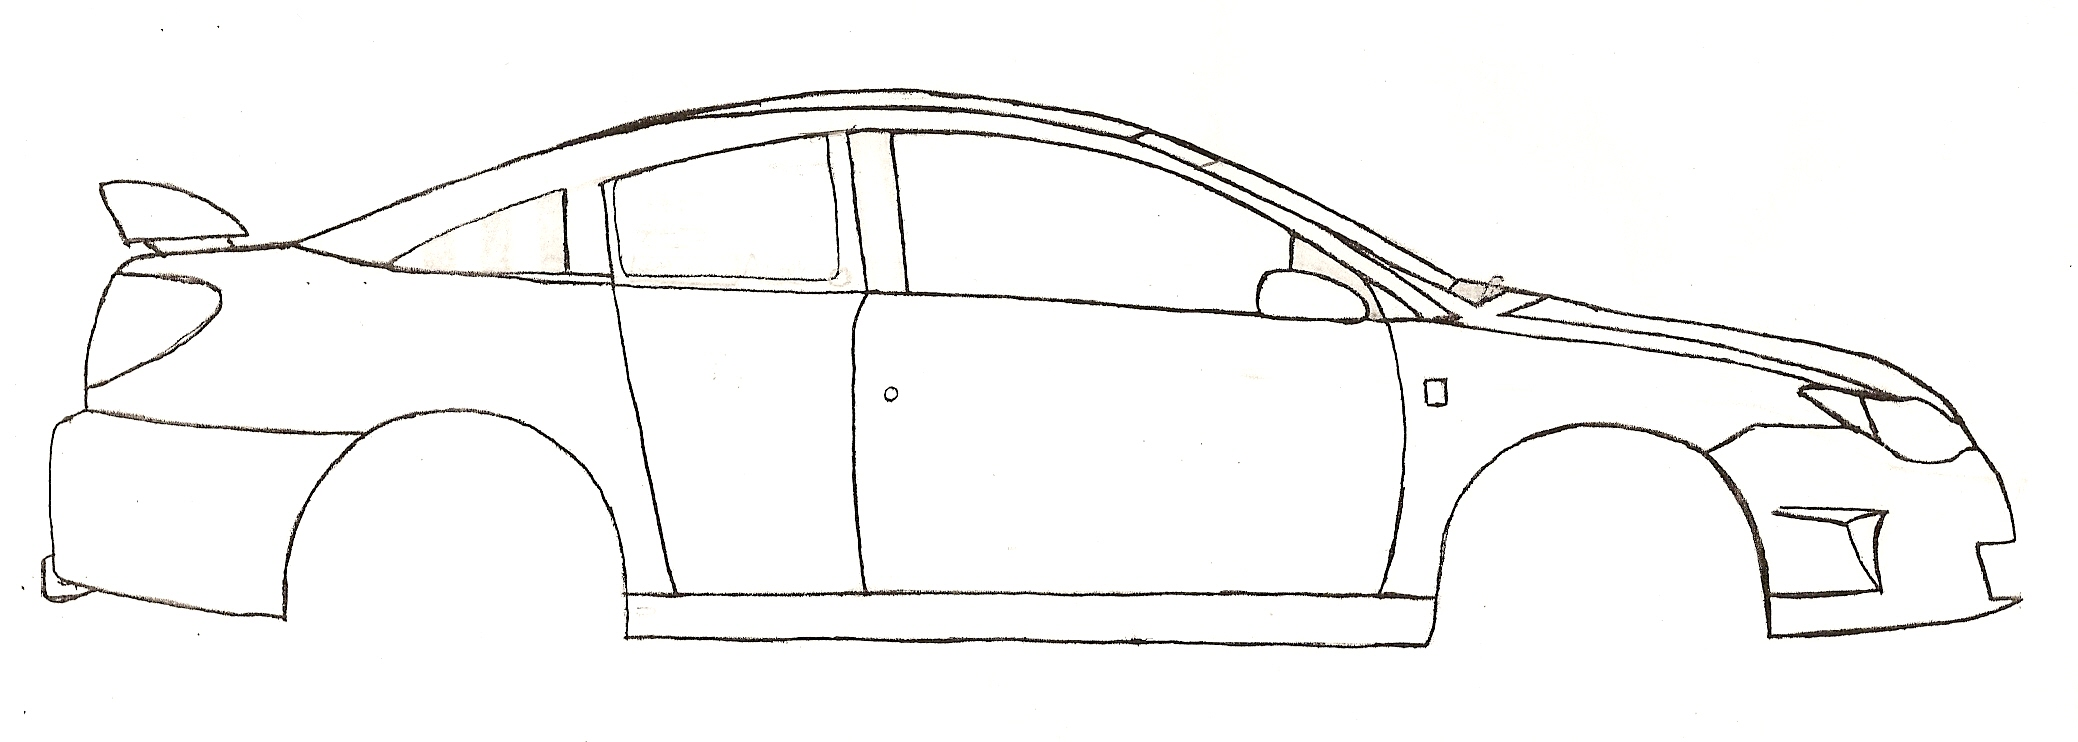 Line Drawings Of the Ion Redline - Saturn ION RedLine Forums